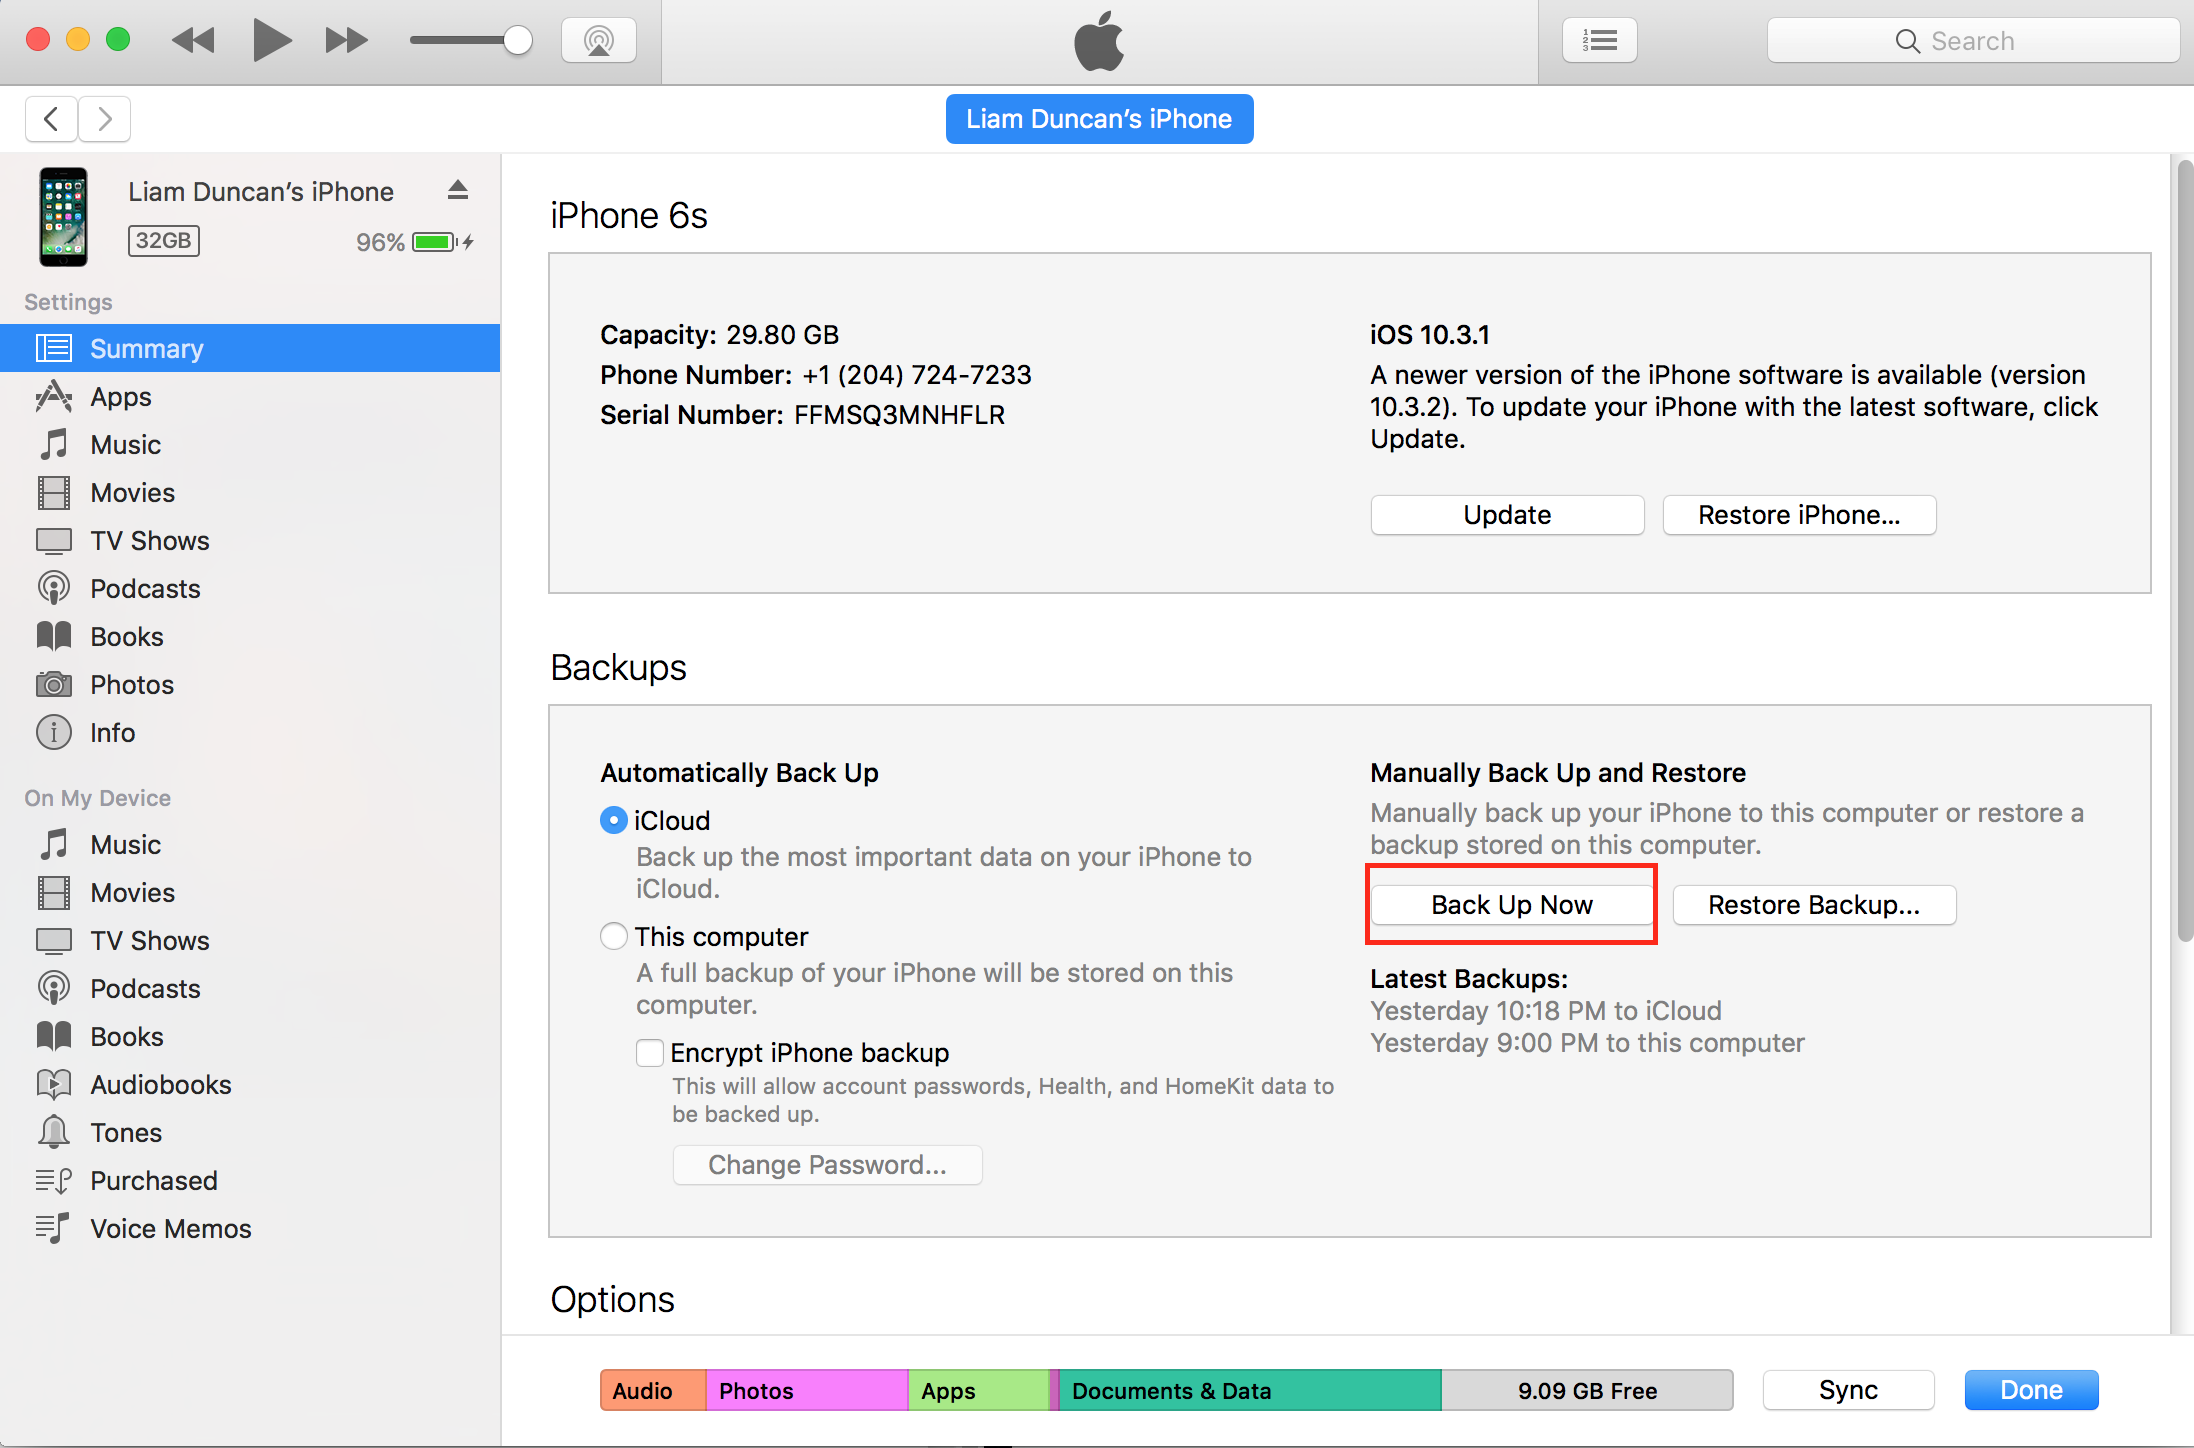 img  back up now itunes - The Best Way to Transfer your Data from an Old iPhone to a New iPhone